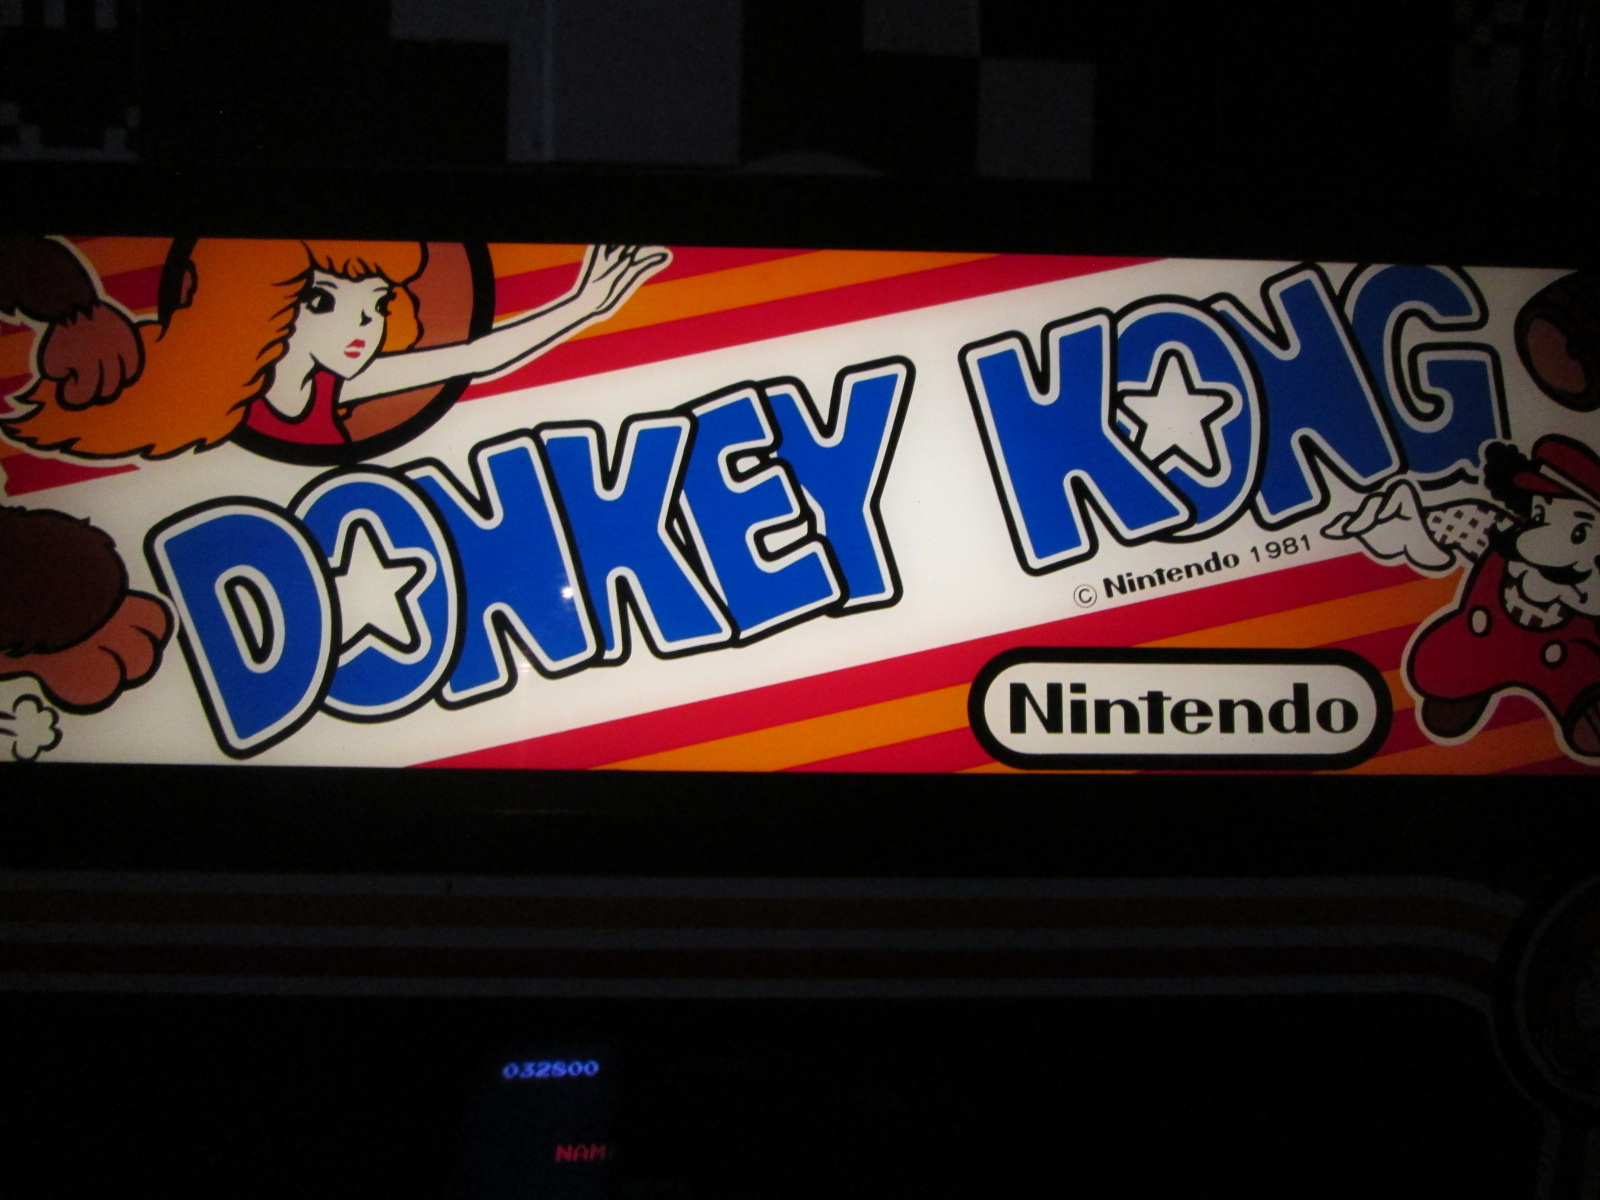 ed1475: Donkey Kong (Arcade) 32,800 points on 2016-08-28 16:17:00